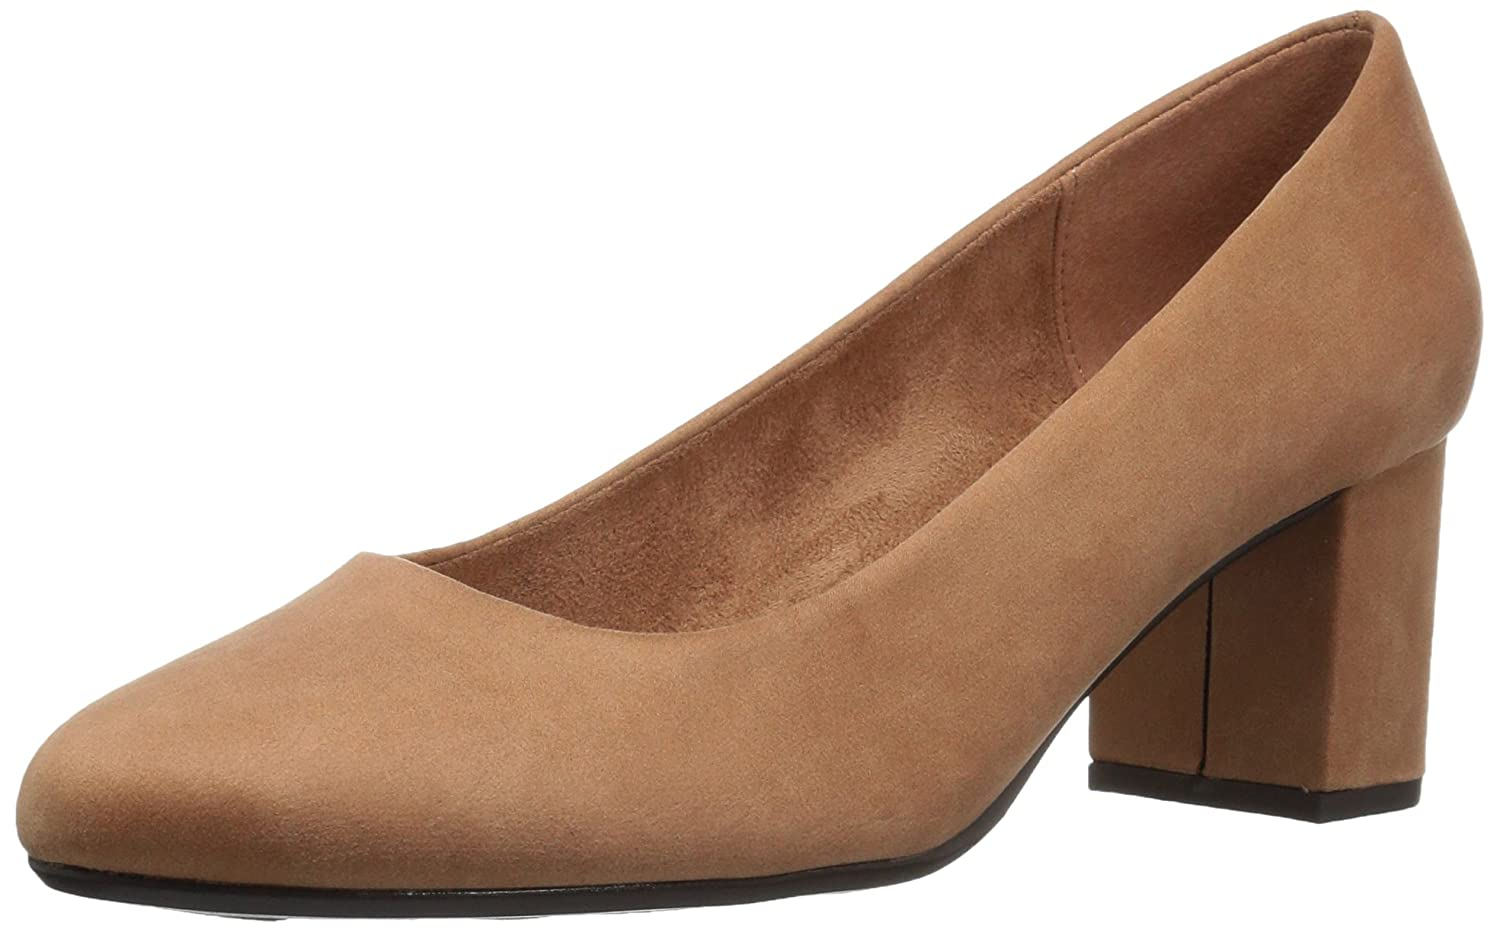 Easy Street Women's Proper Dress Pump B072M2S5Y9 7 N US|Sand Super Suede